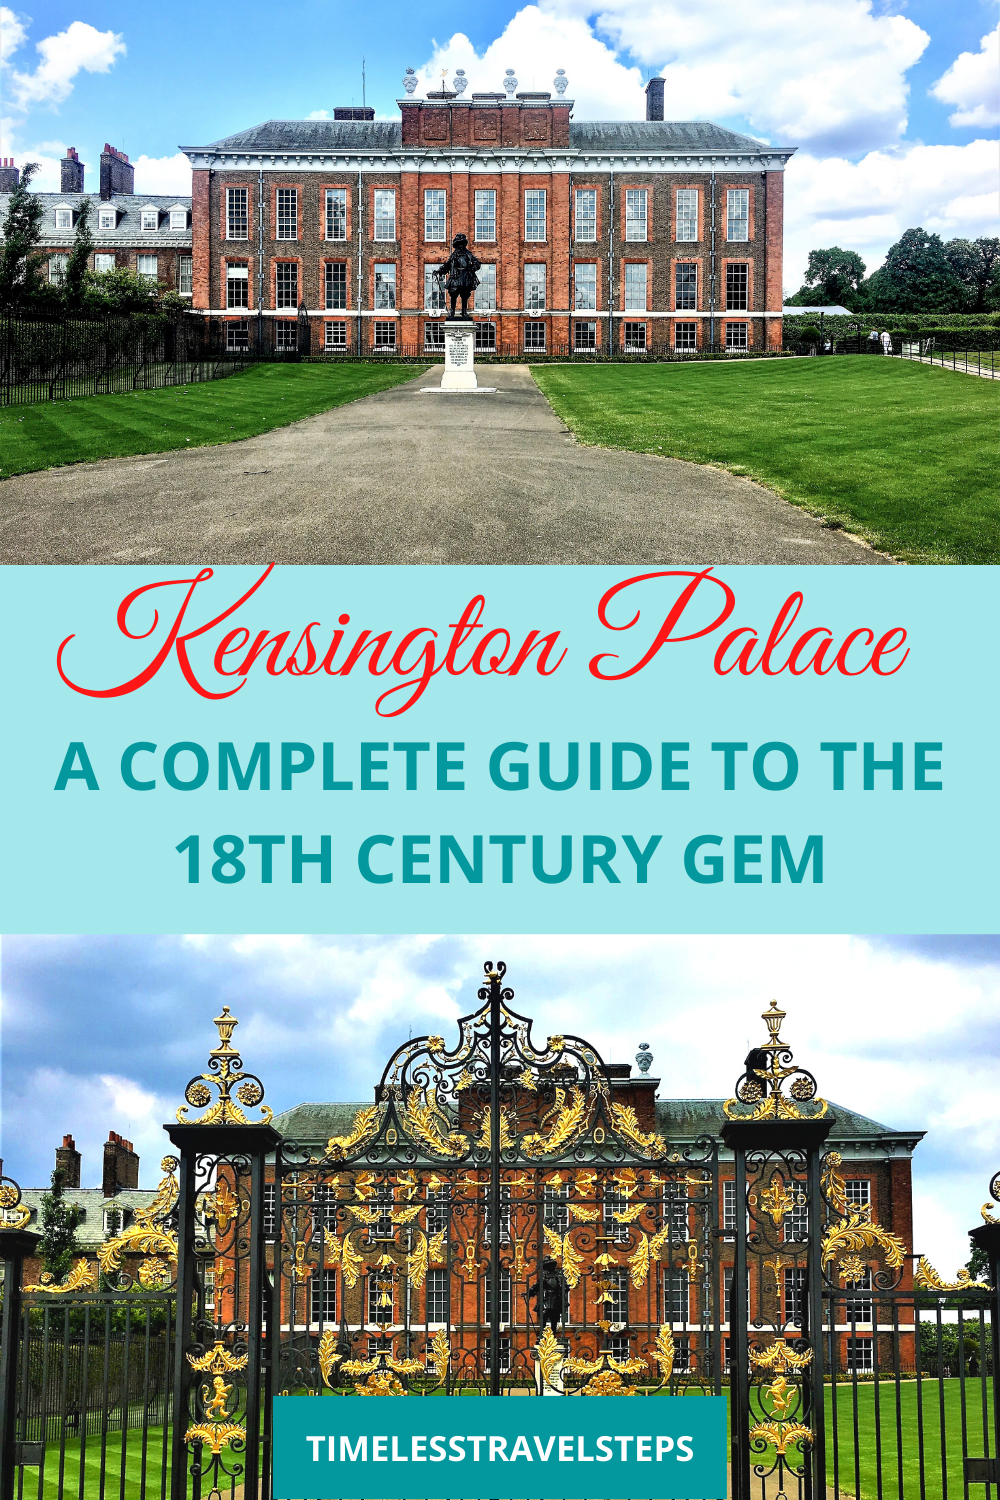 Take a peek inside this 18th century historical gem! Highlights of the Palace's incredible architecture + a synopsis of it's history + detailed guide on how to get here. via @GGeorgina_timelesstravelsteps/